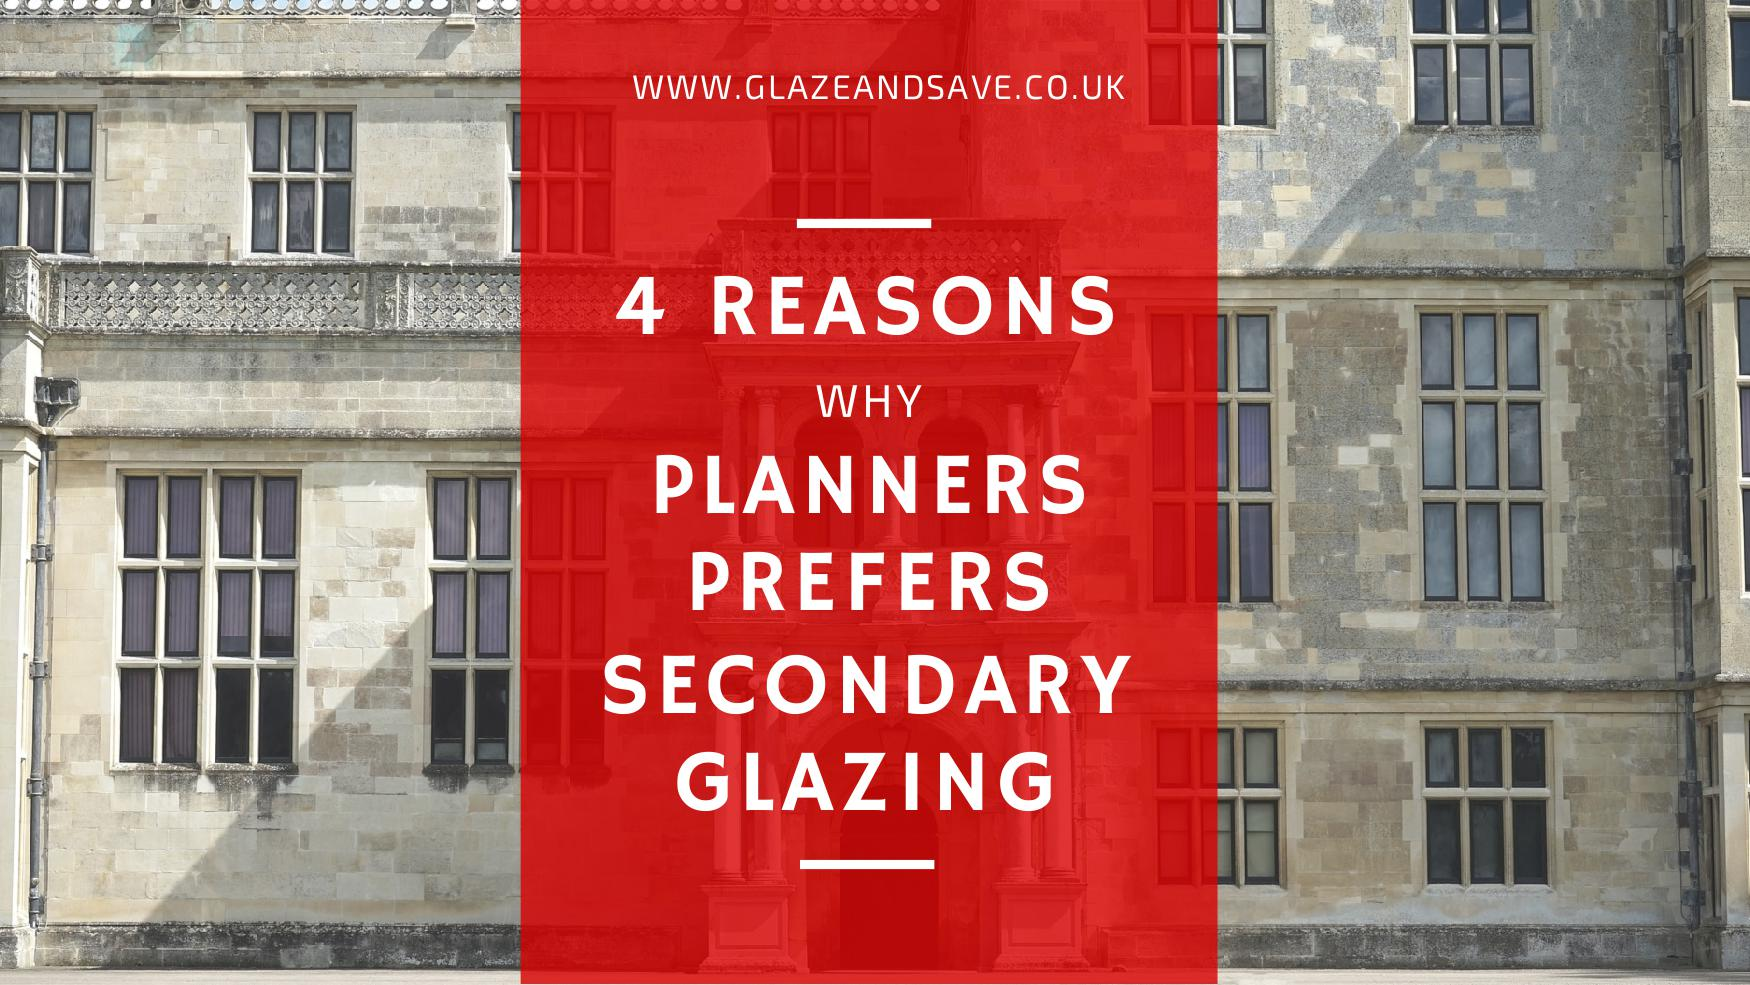 4 reasons why planners prefer secondary glazing by Glaze and Save bespoke magnetic secondary glazing based in Perth Scotland.